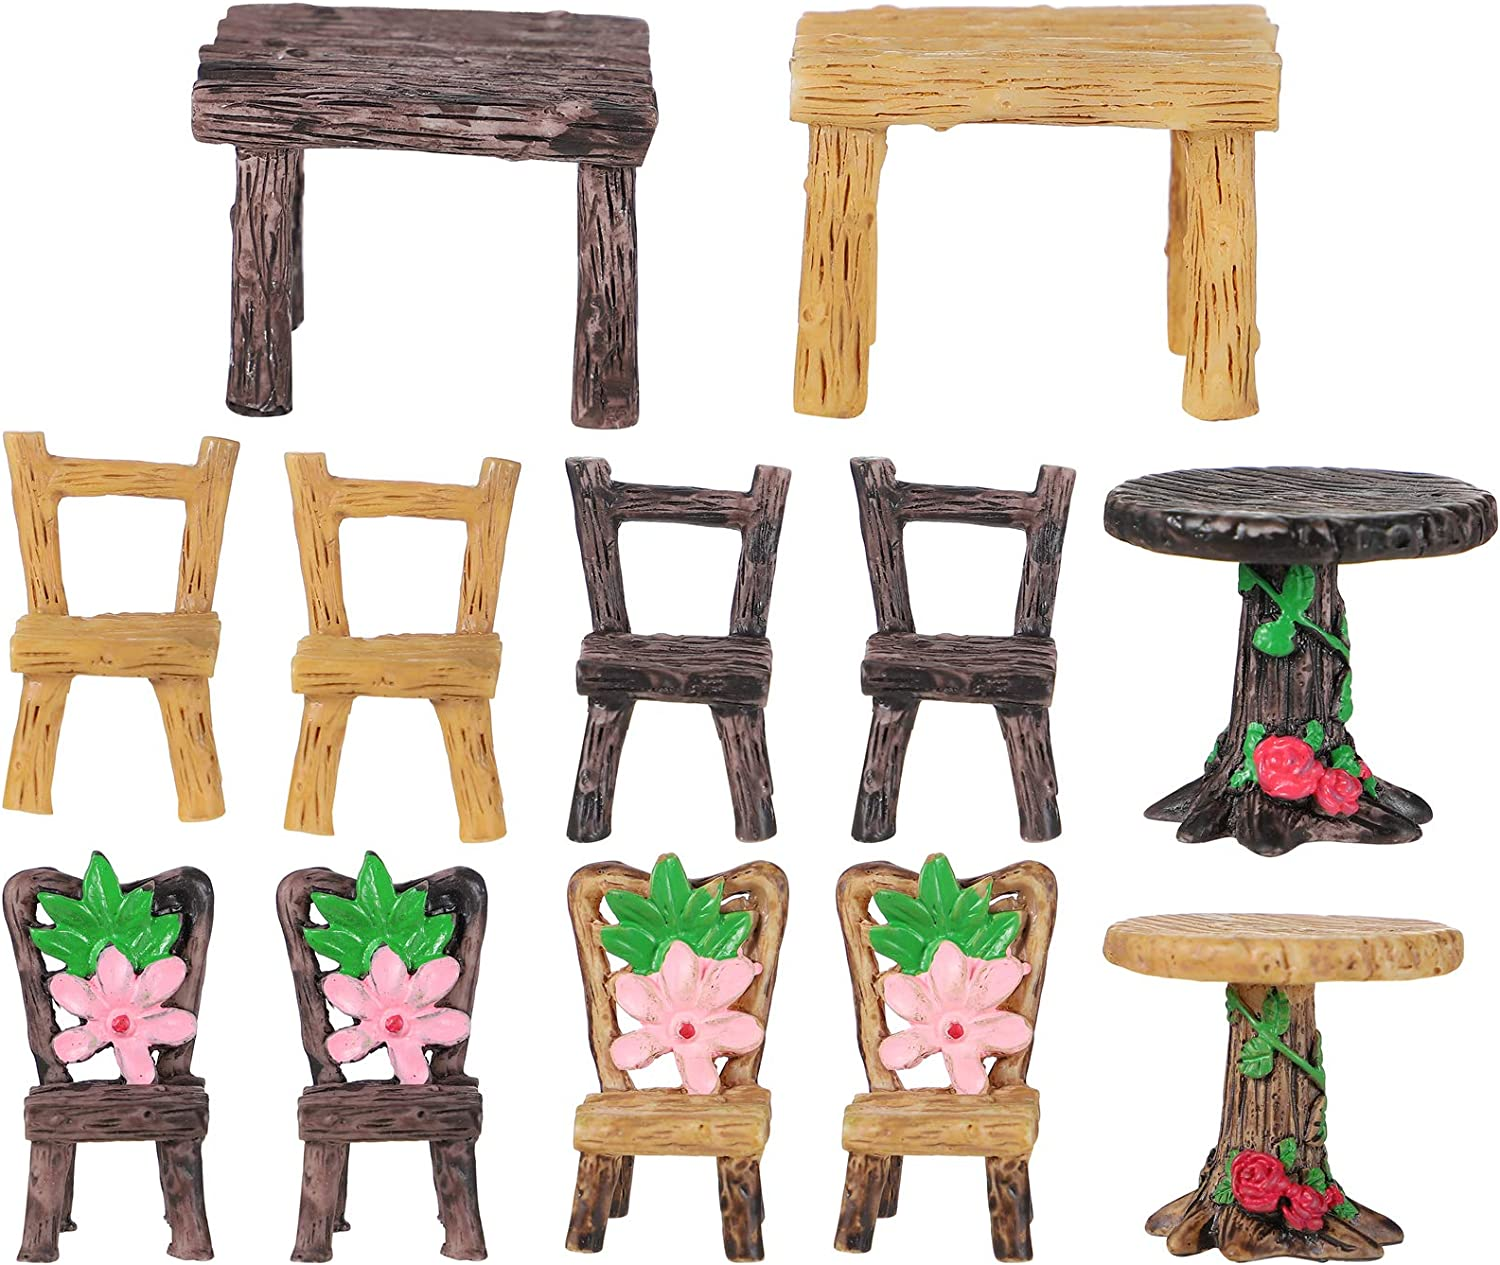 Yardwe 4 Sets Table Chair New color Resin Craft Max 45% OFF Ornament Landscape Micro F